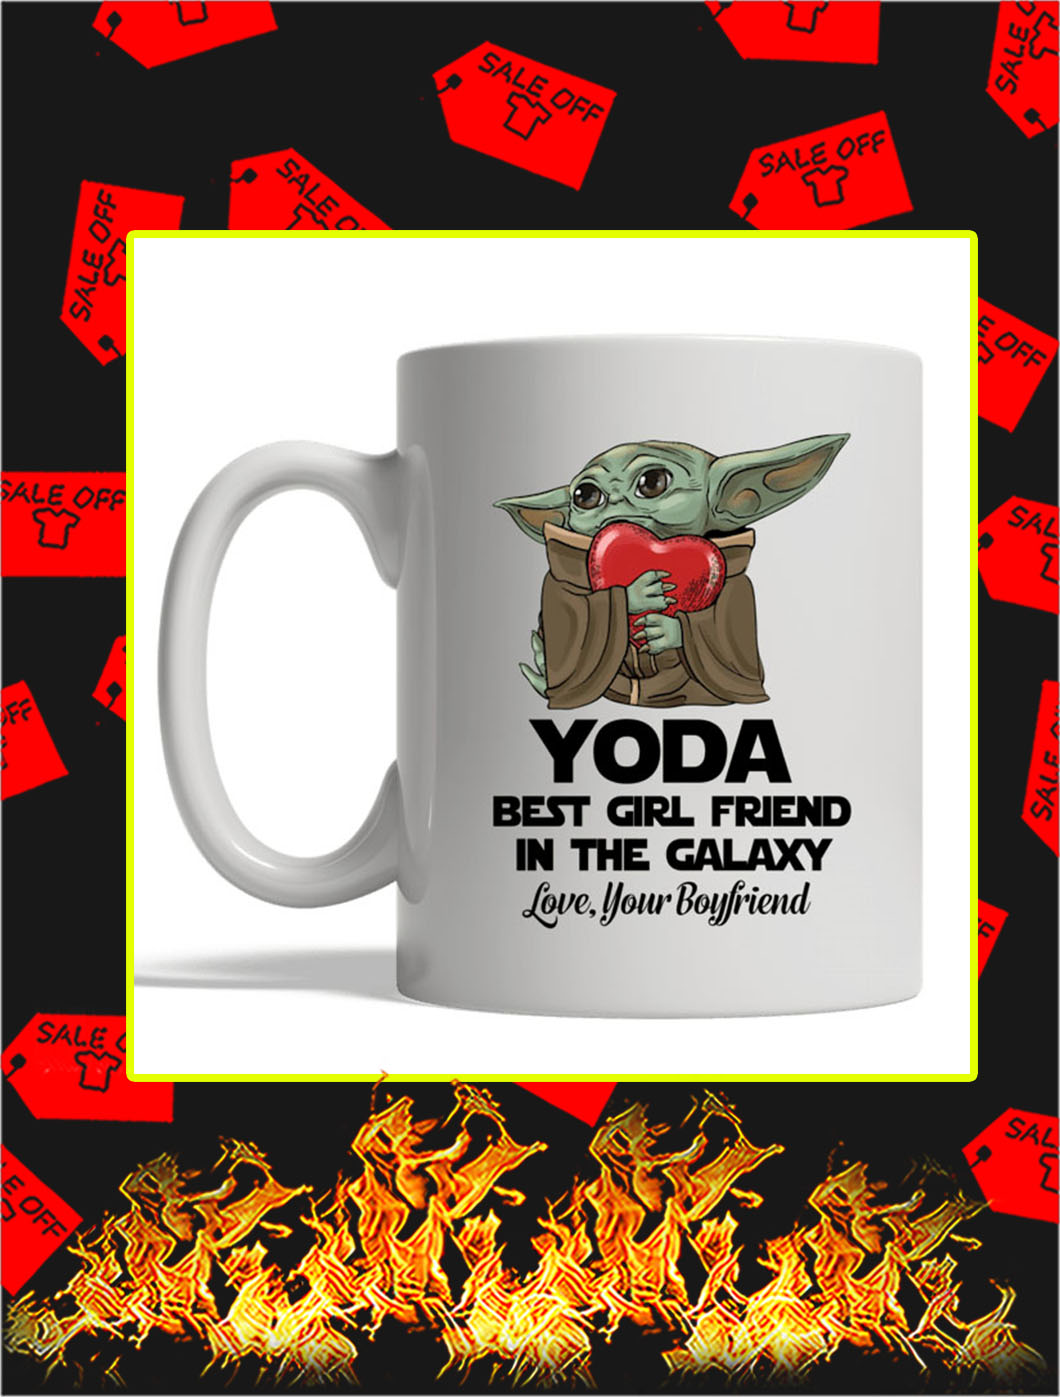 Yoda Best Girl Friend In The Galaxy Love Your Boyfriend mug